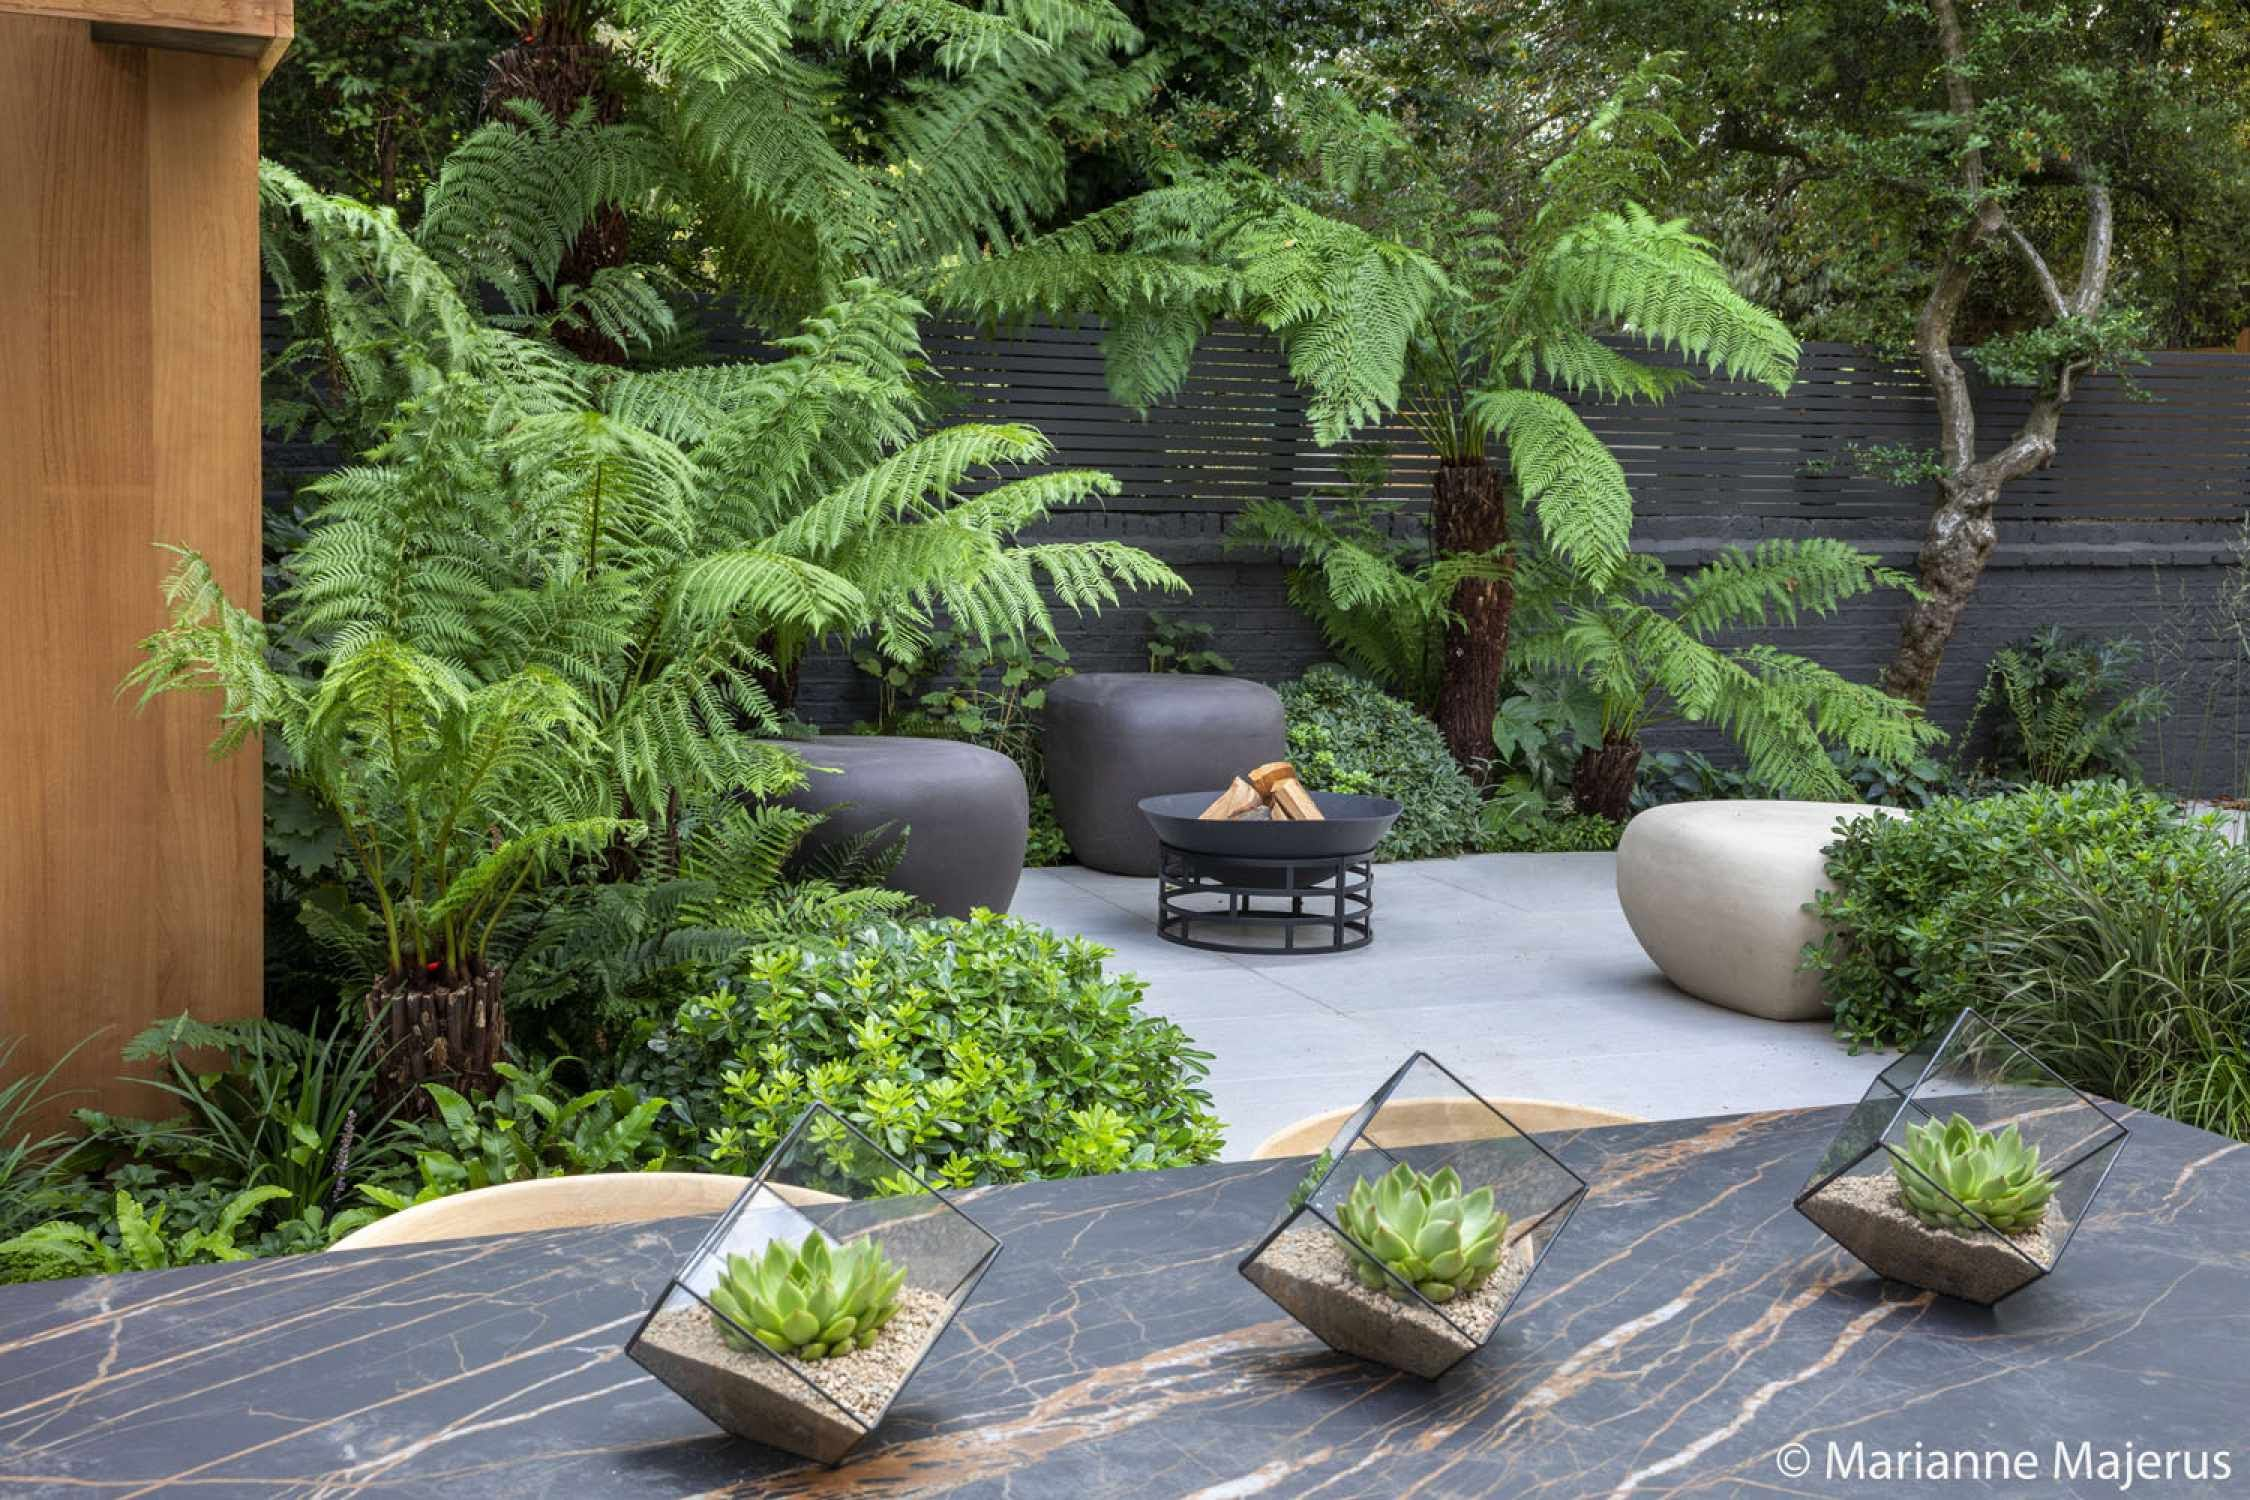 Calm in the City - Garden Design & Landscaping Project in ...